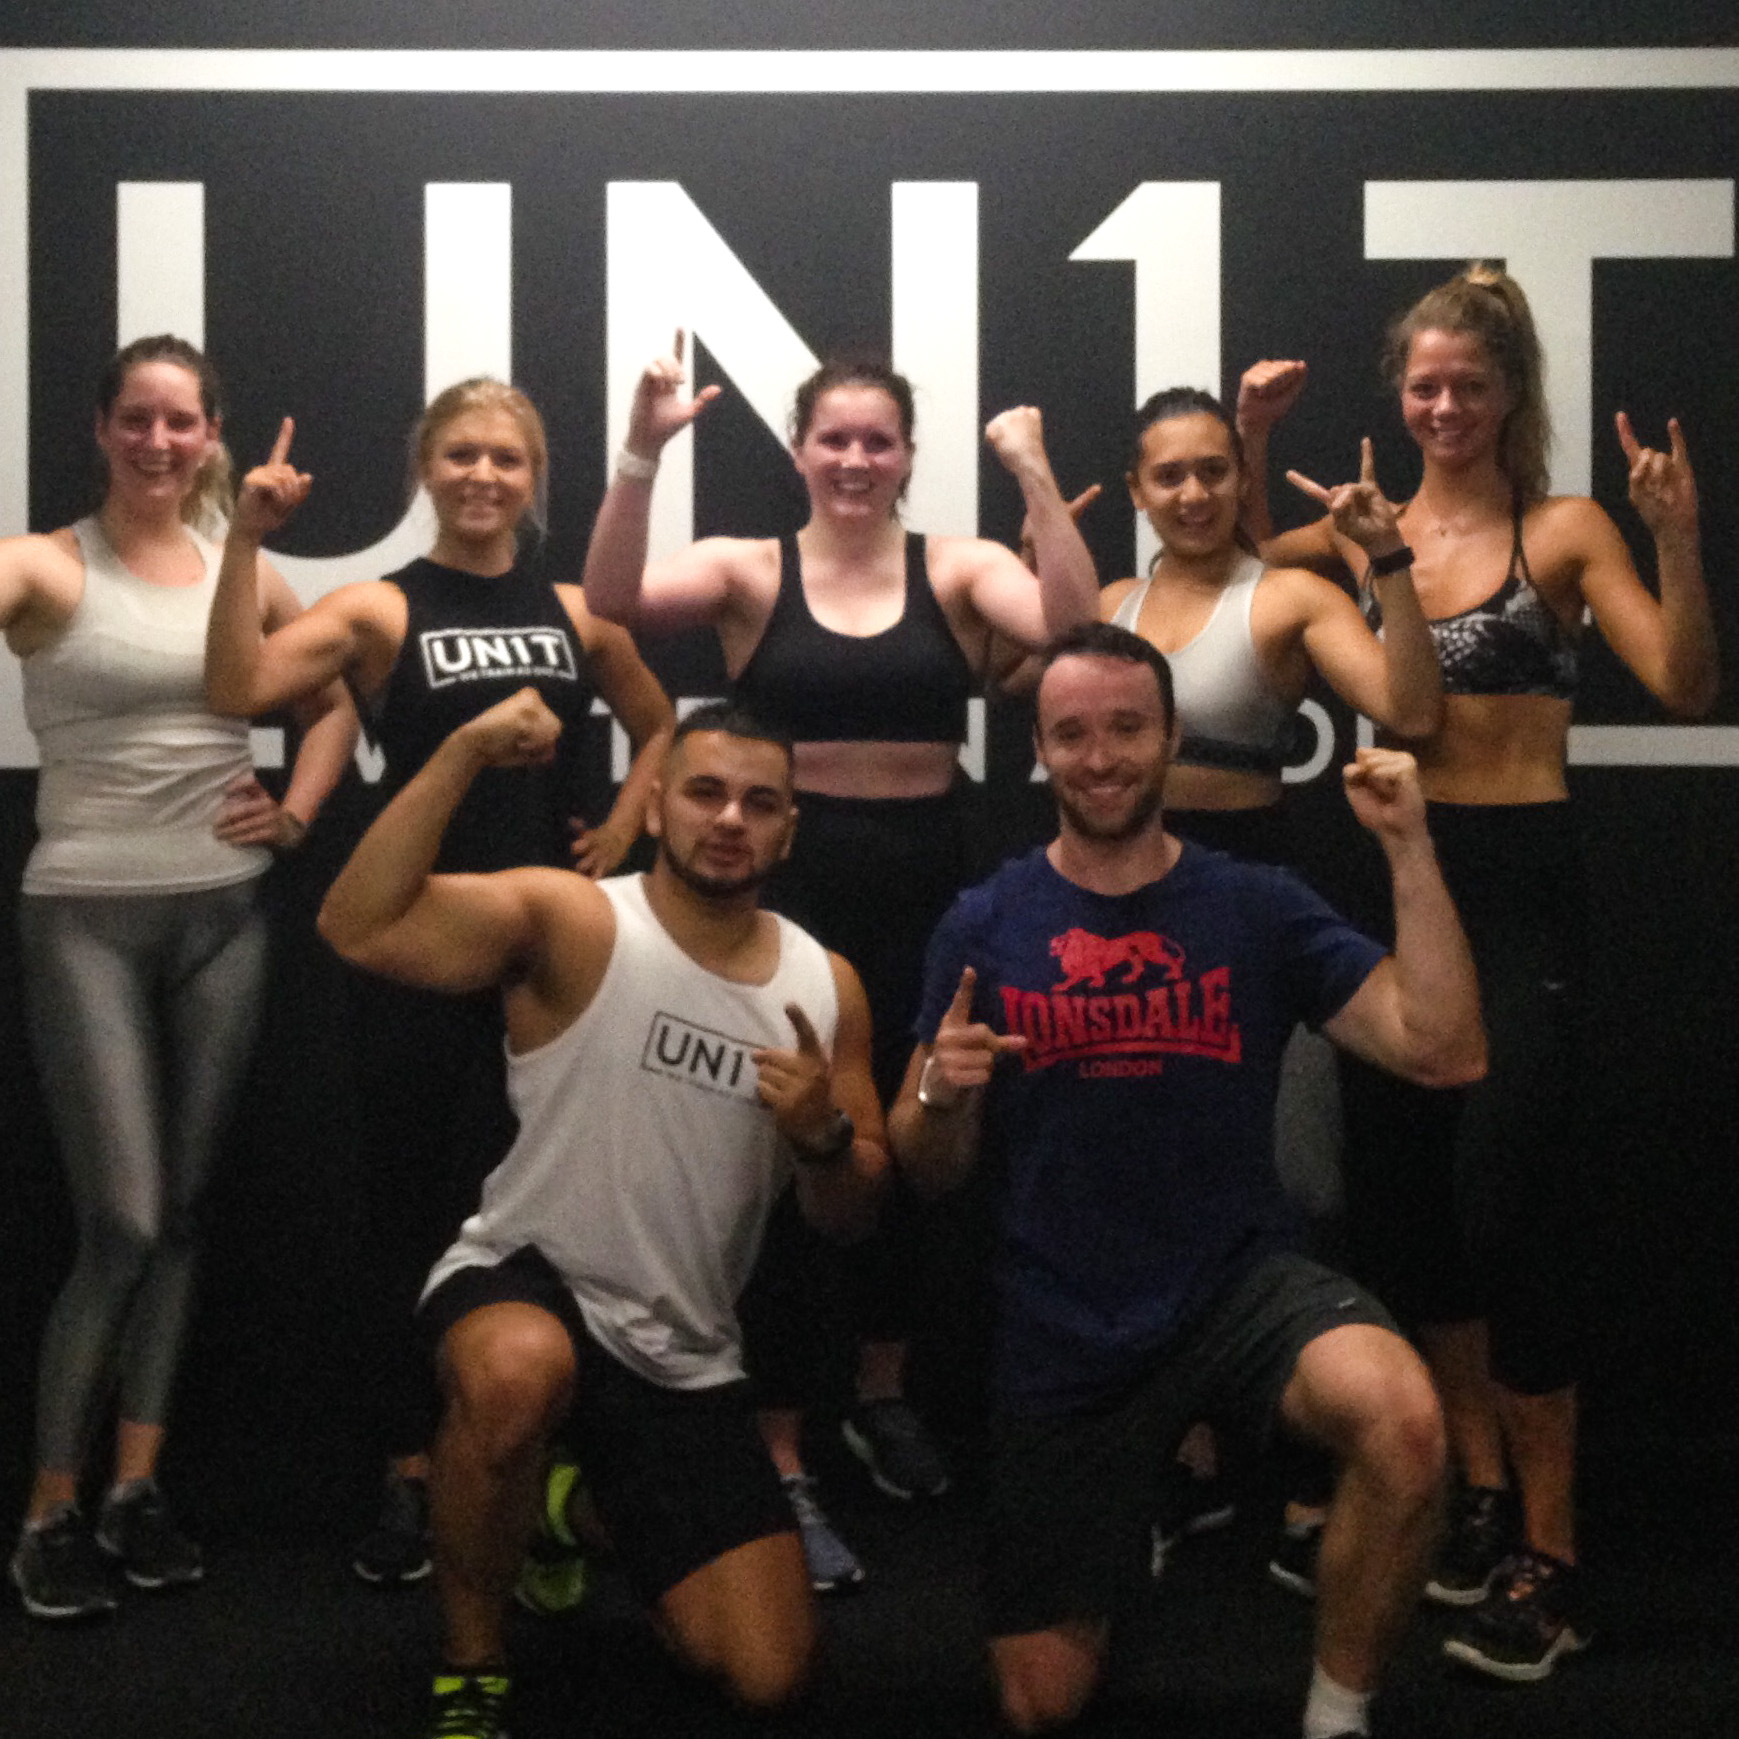 I MOVE ME TROOPER UN1T FULHAM LONDON BOUTIQUE FITNESS STUDIO TEAM PICTURE